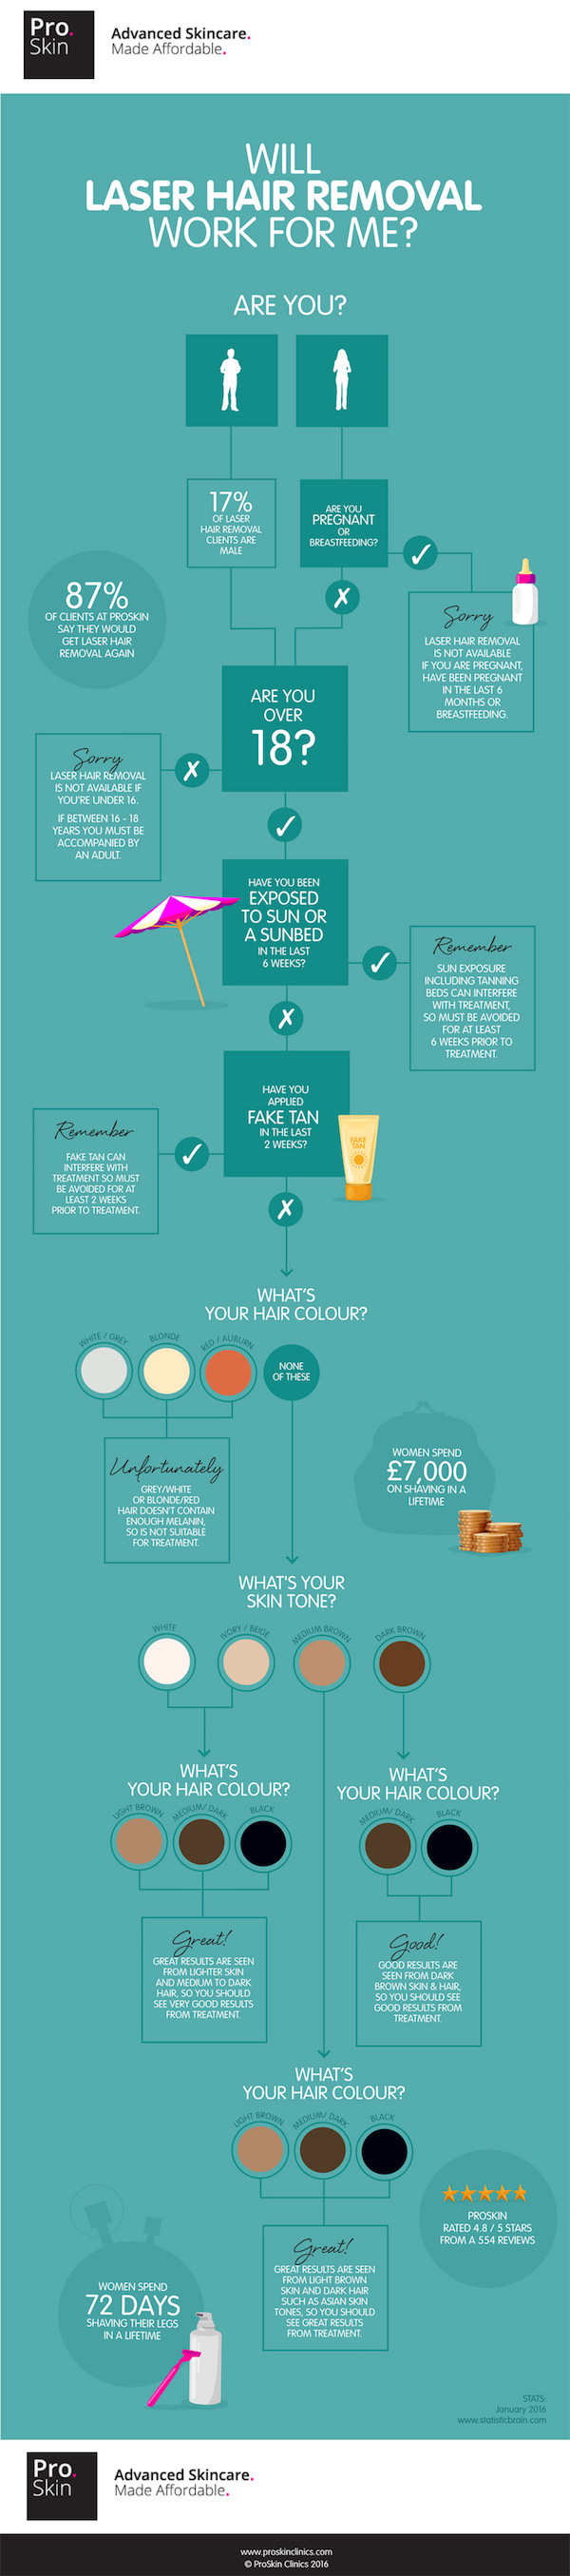 Laser Hair Removal Infographic